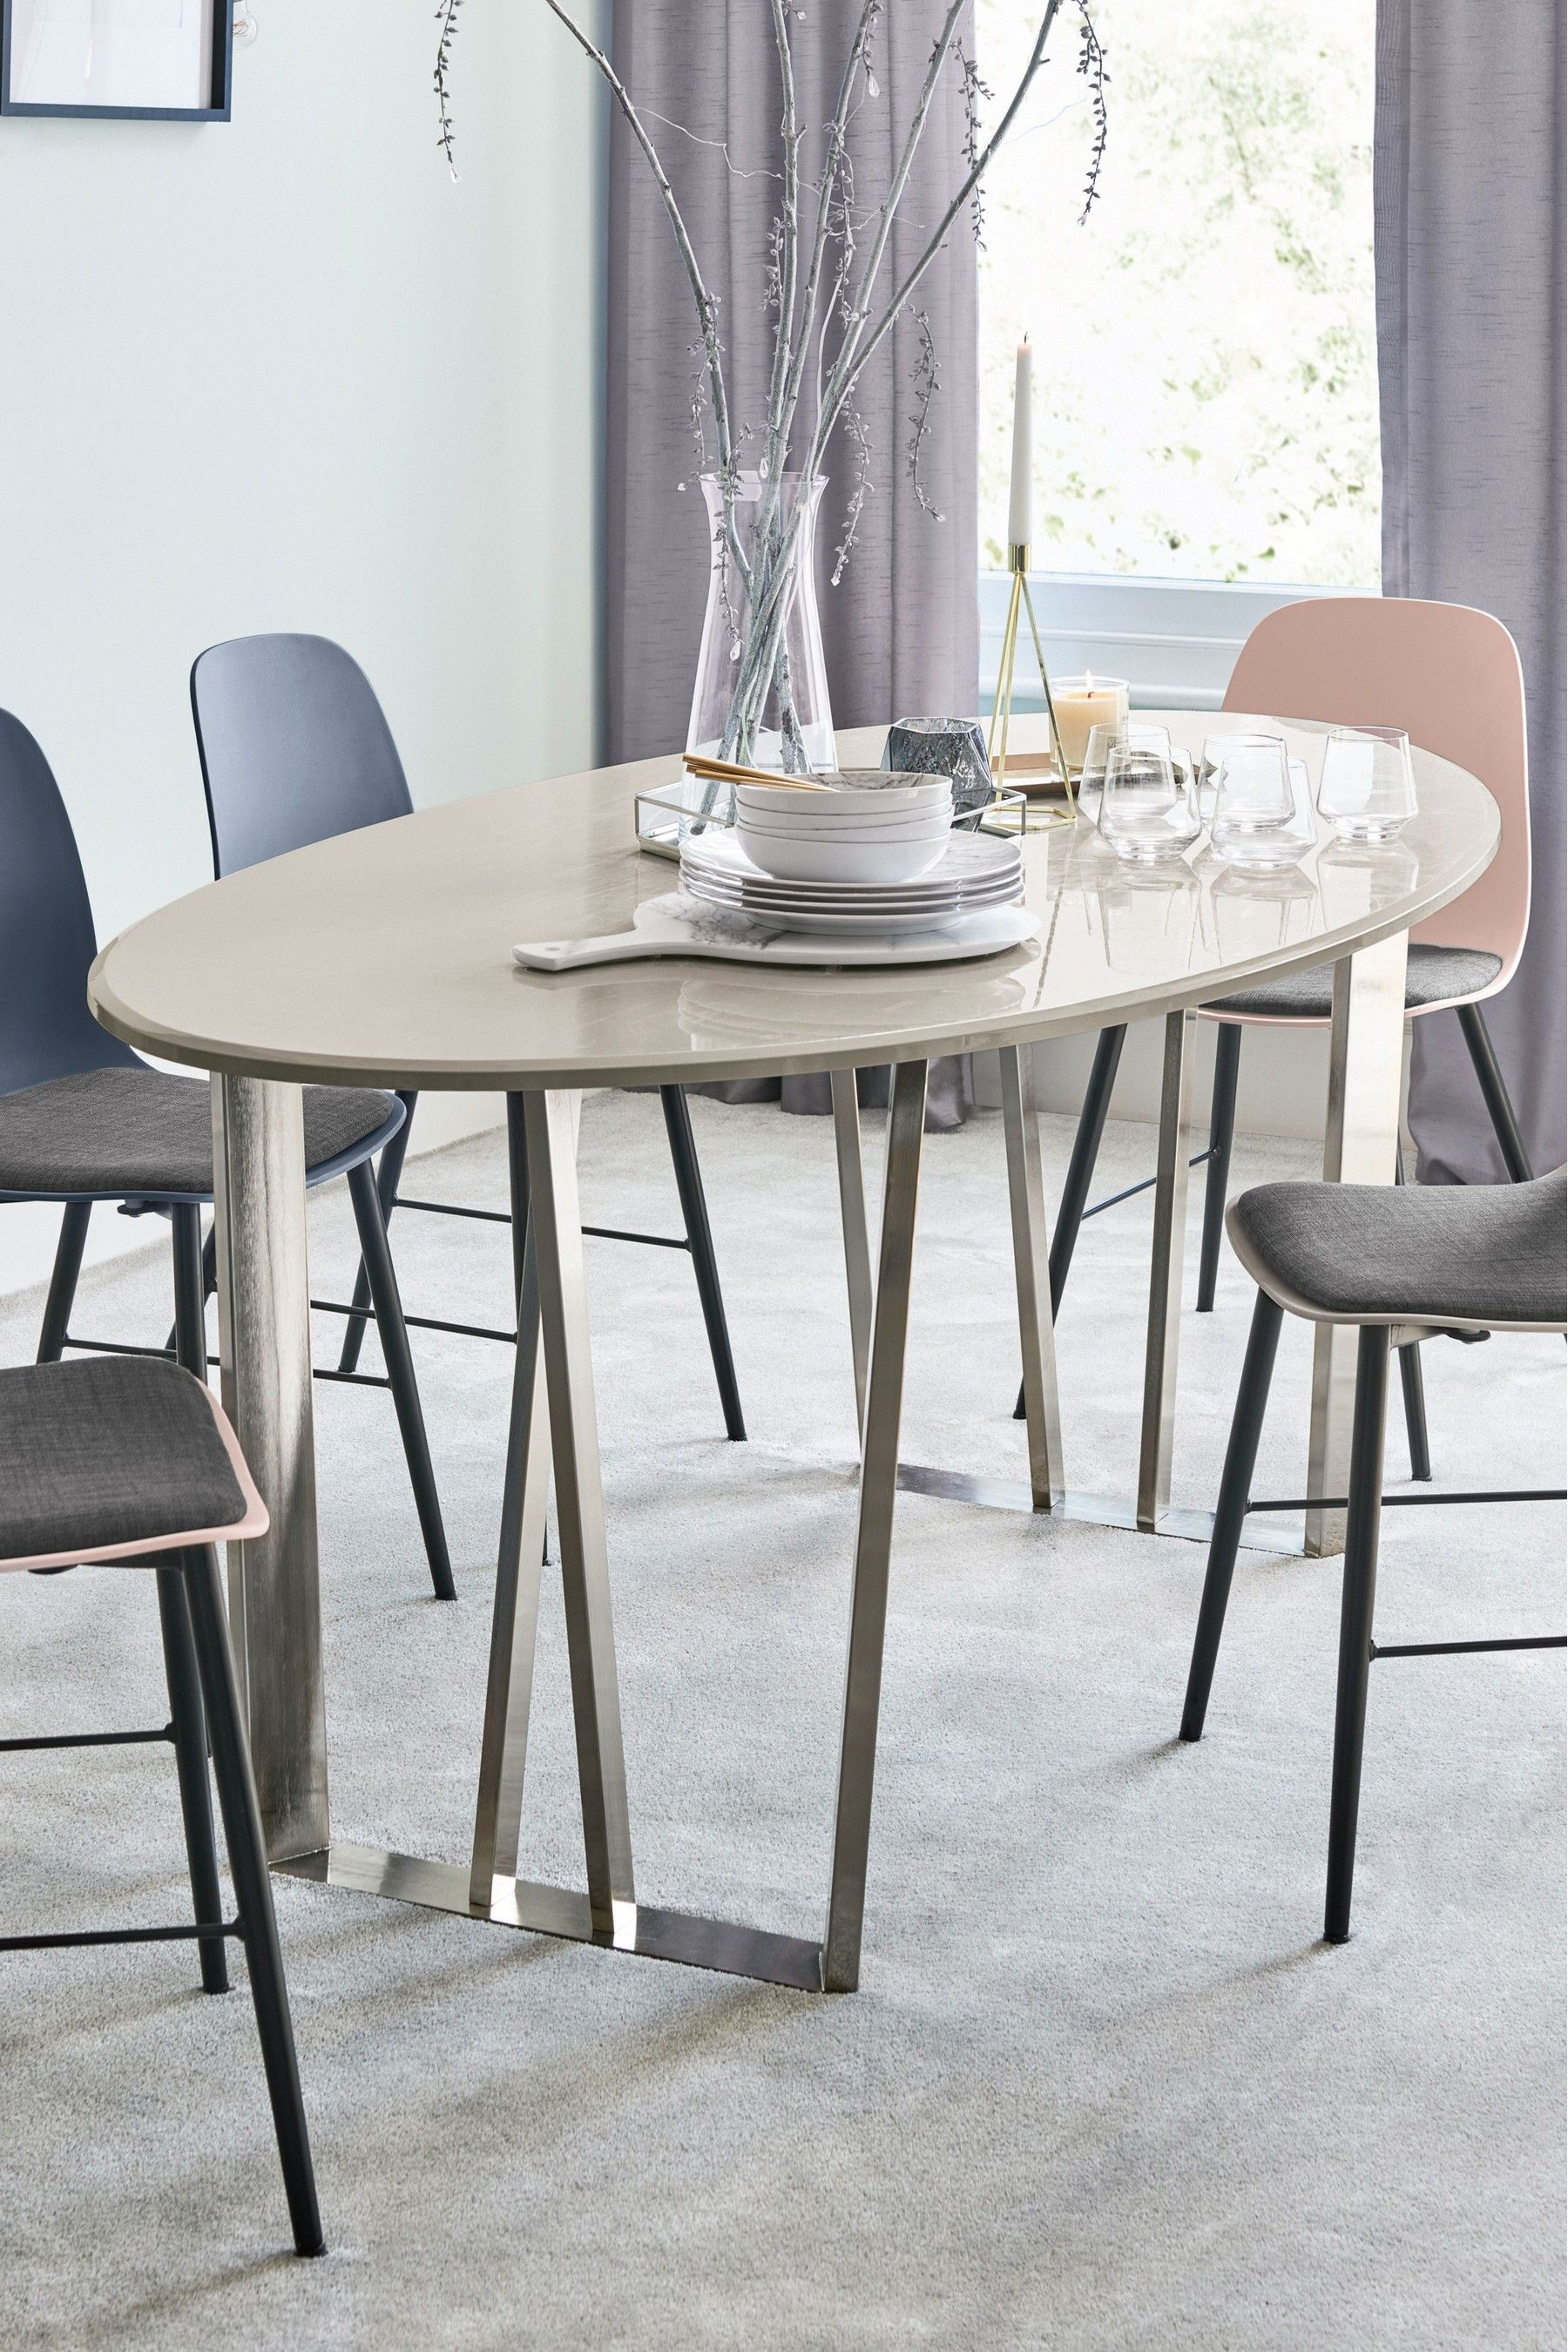 Buy Mode Gloss Oval Dining Table From The Next Uk Online Shop Oval Table Dining Dining Table Oak Dining Table